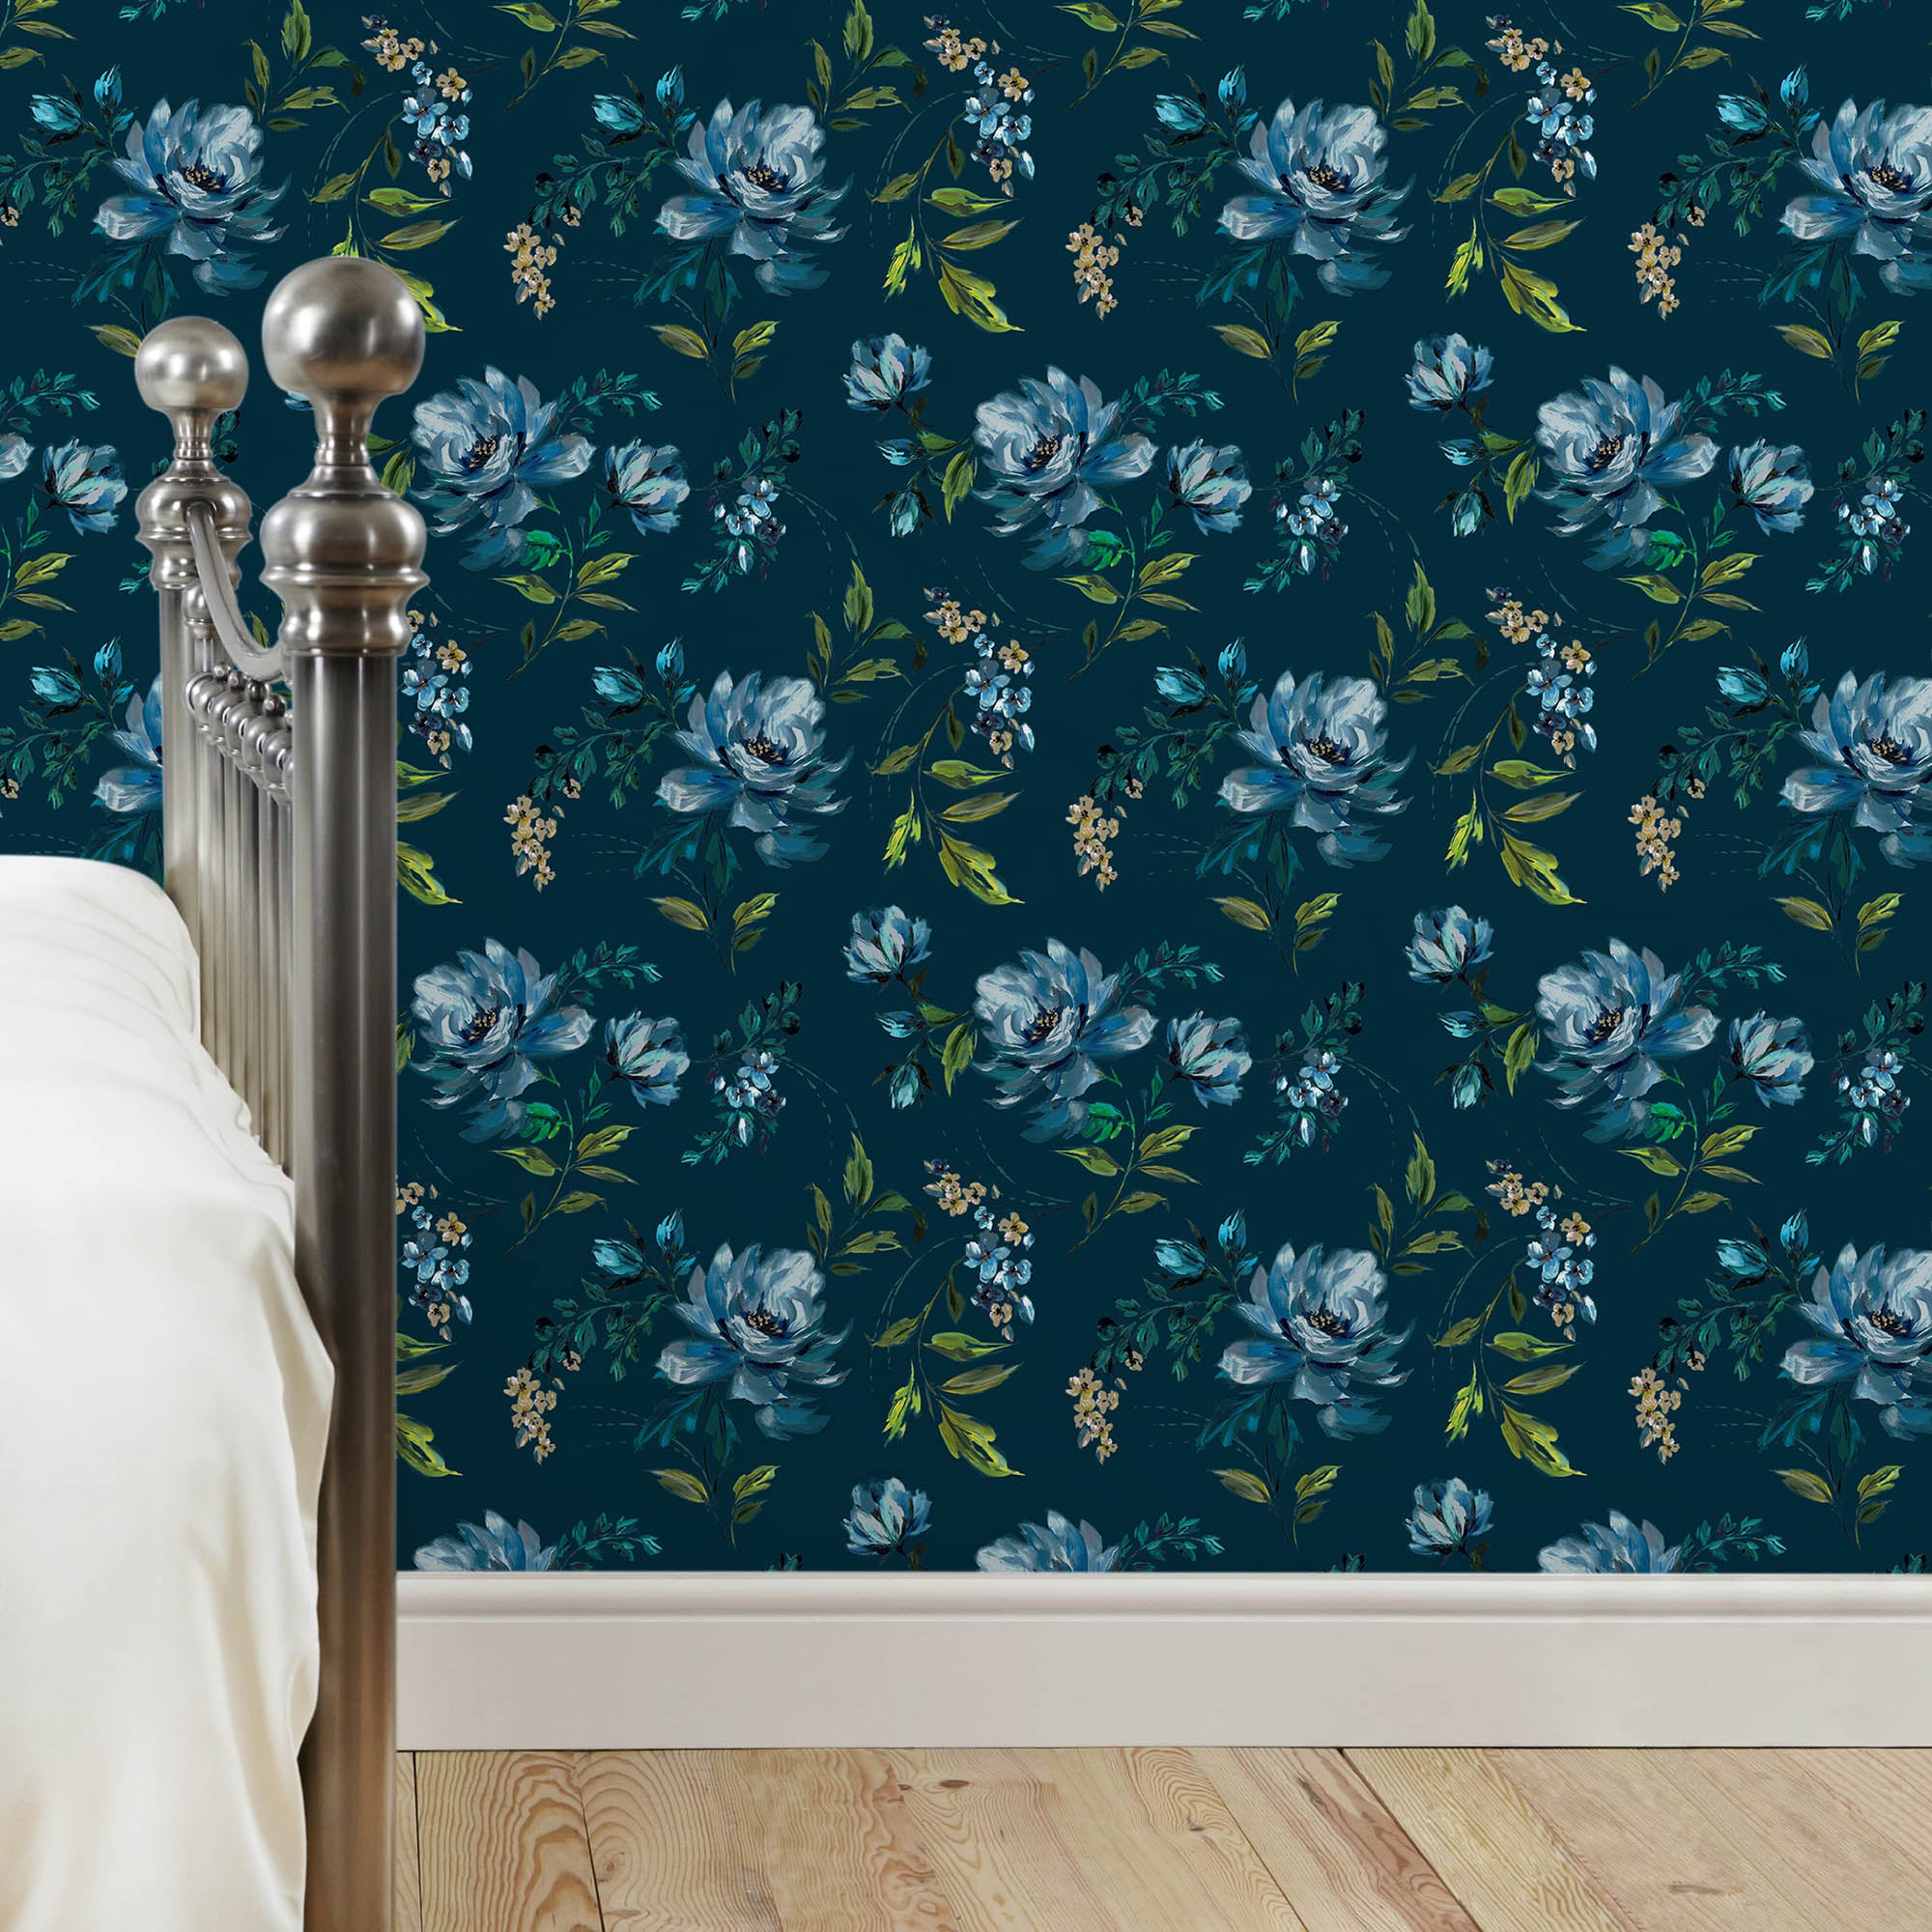 Colonial Floral Wallpaper Teal (Blue)